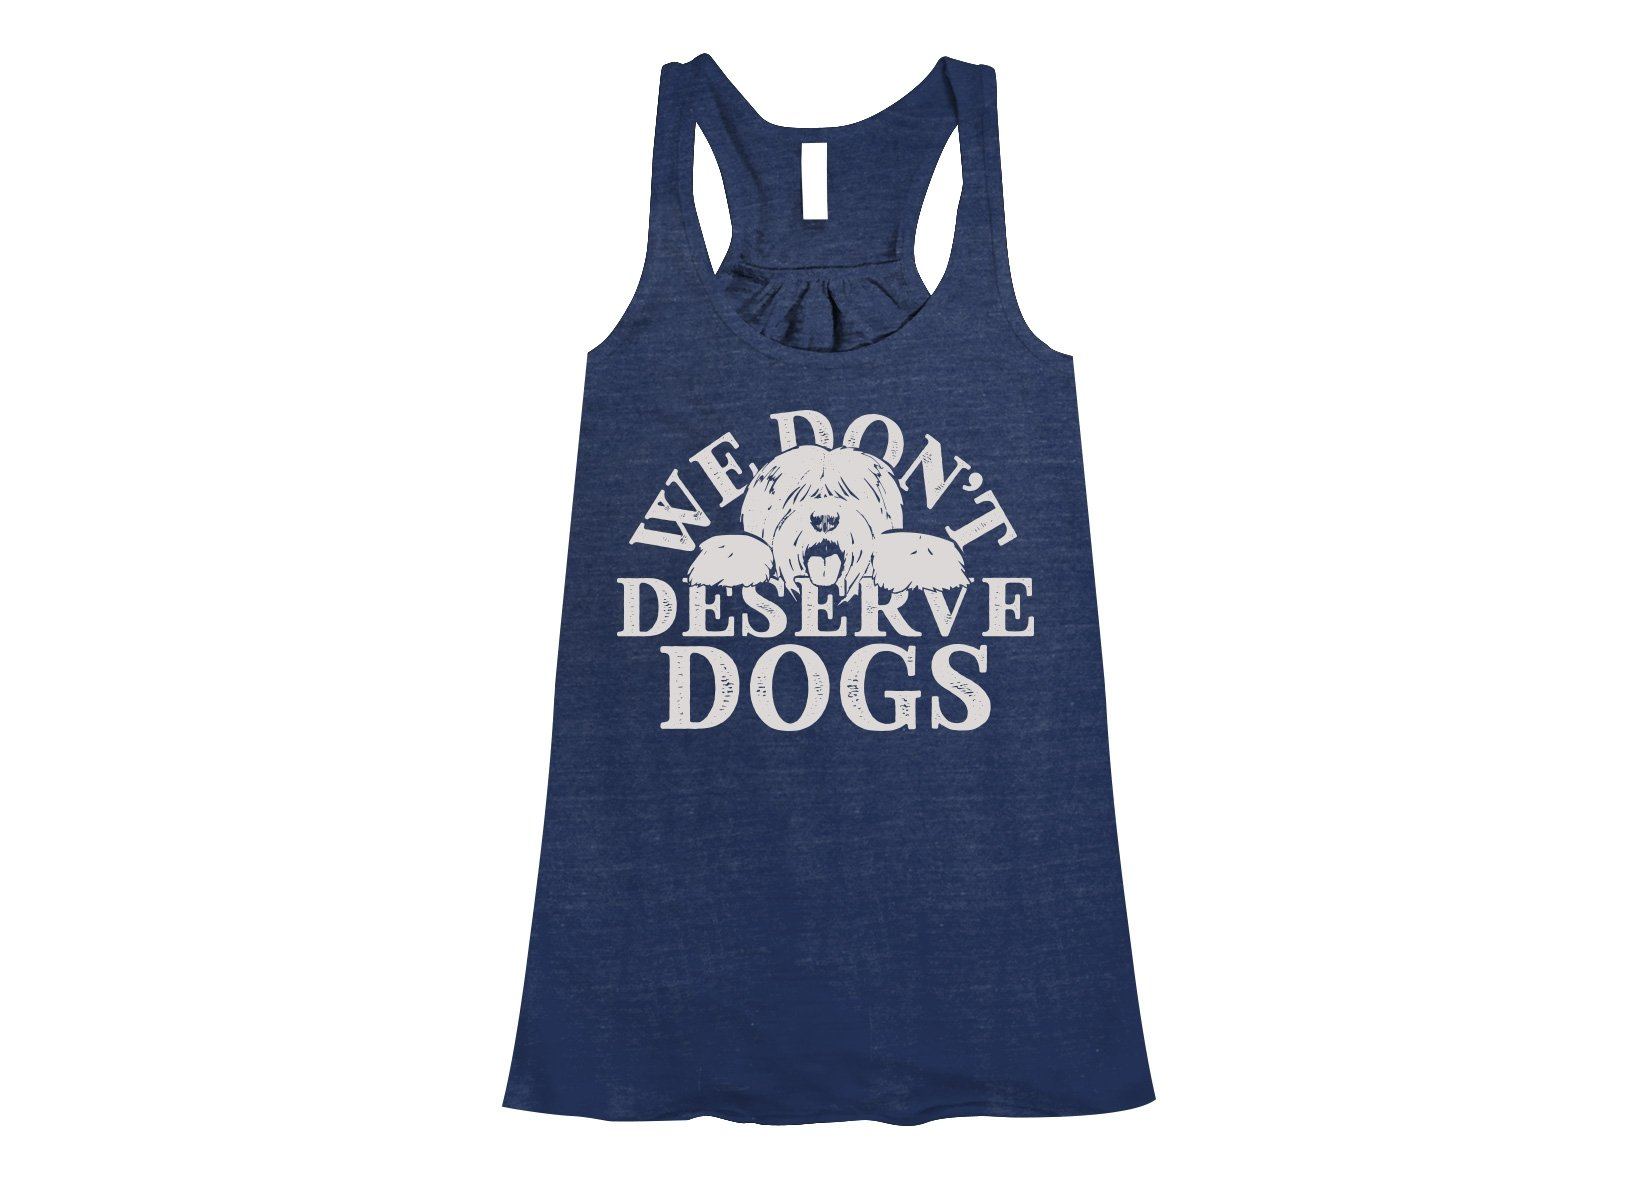 We Don't Deserve Dogs on Womens Tanks T-Shirt